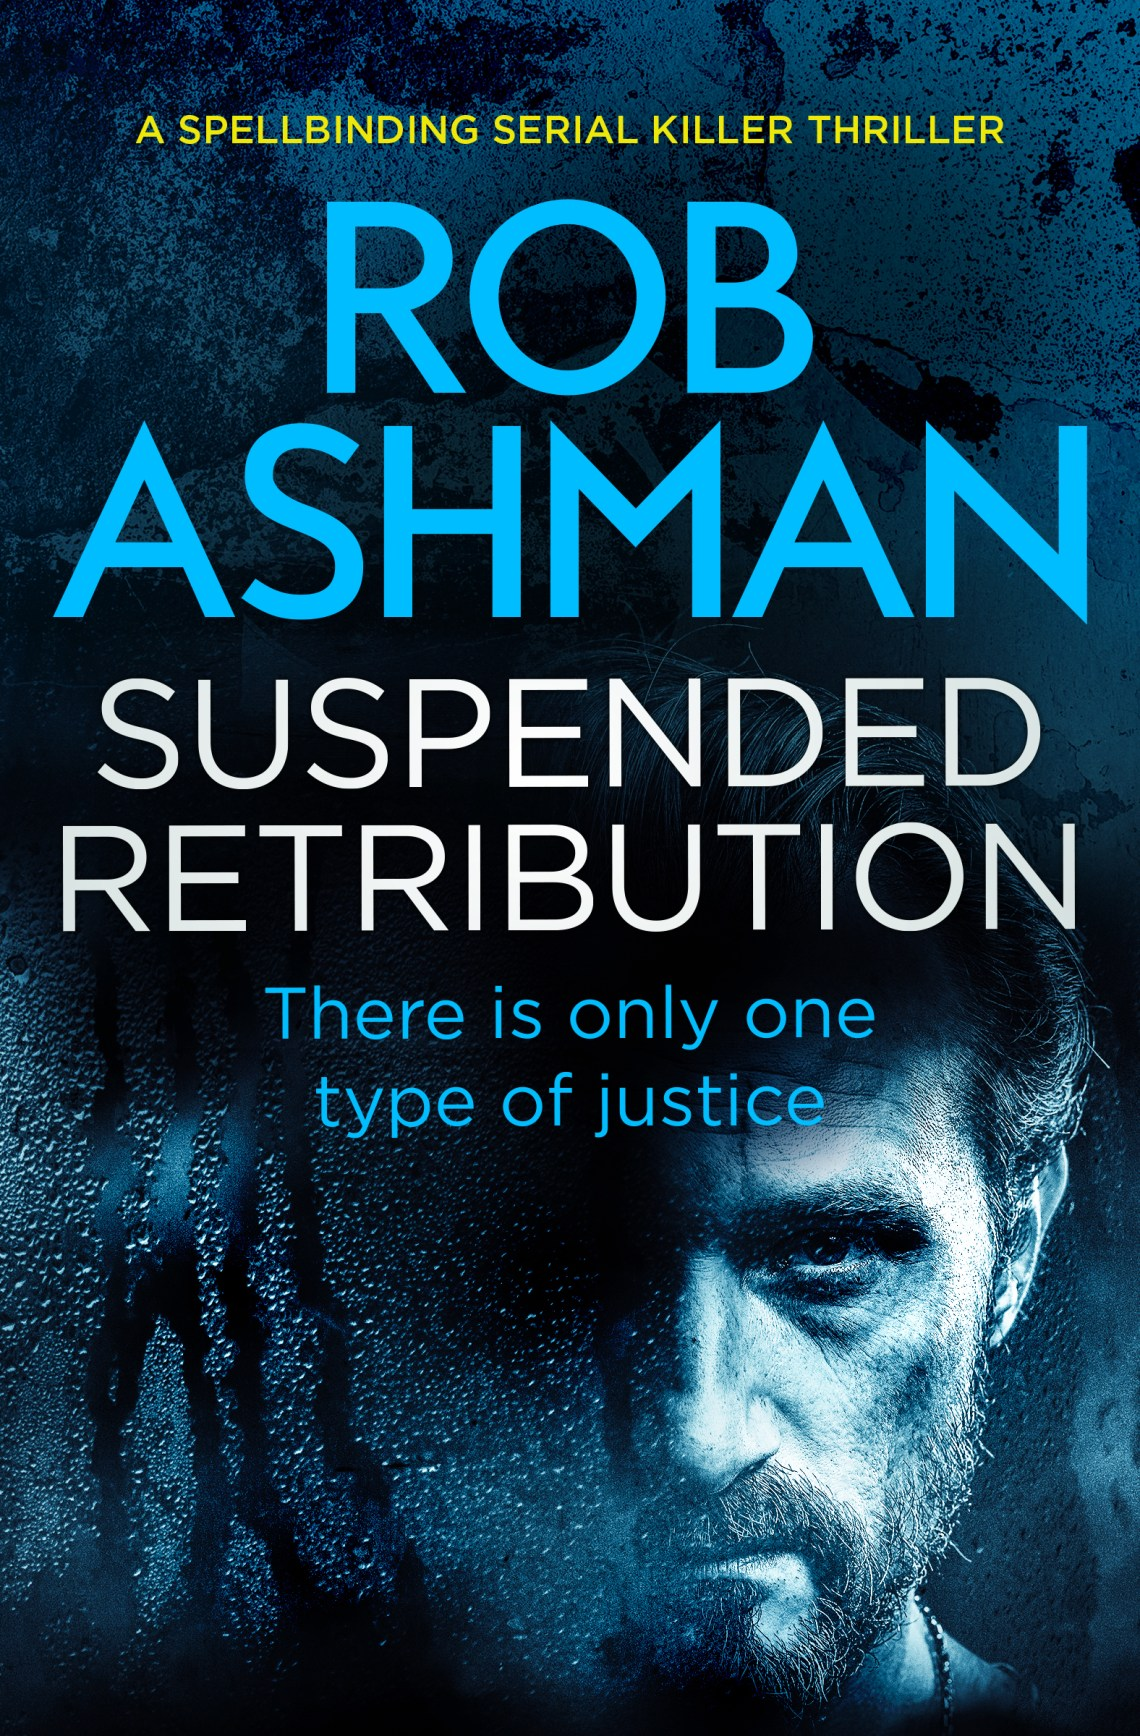 Suspended Retribution - Rob Ashman - Book Cover